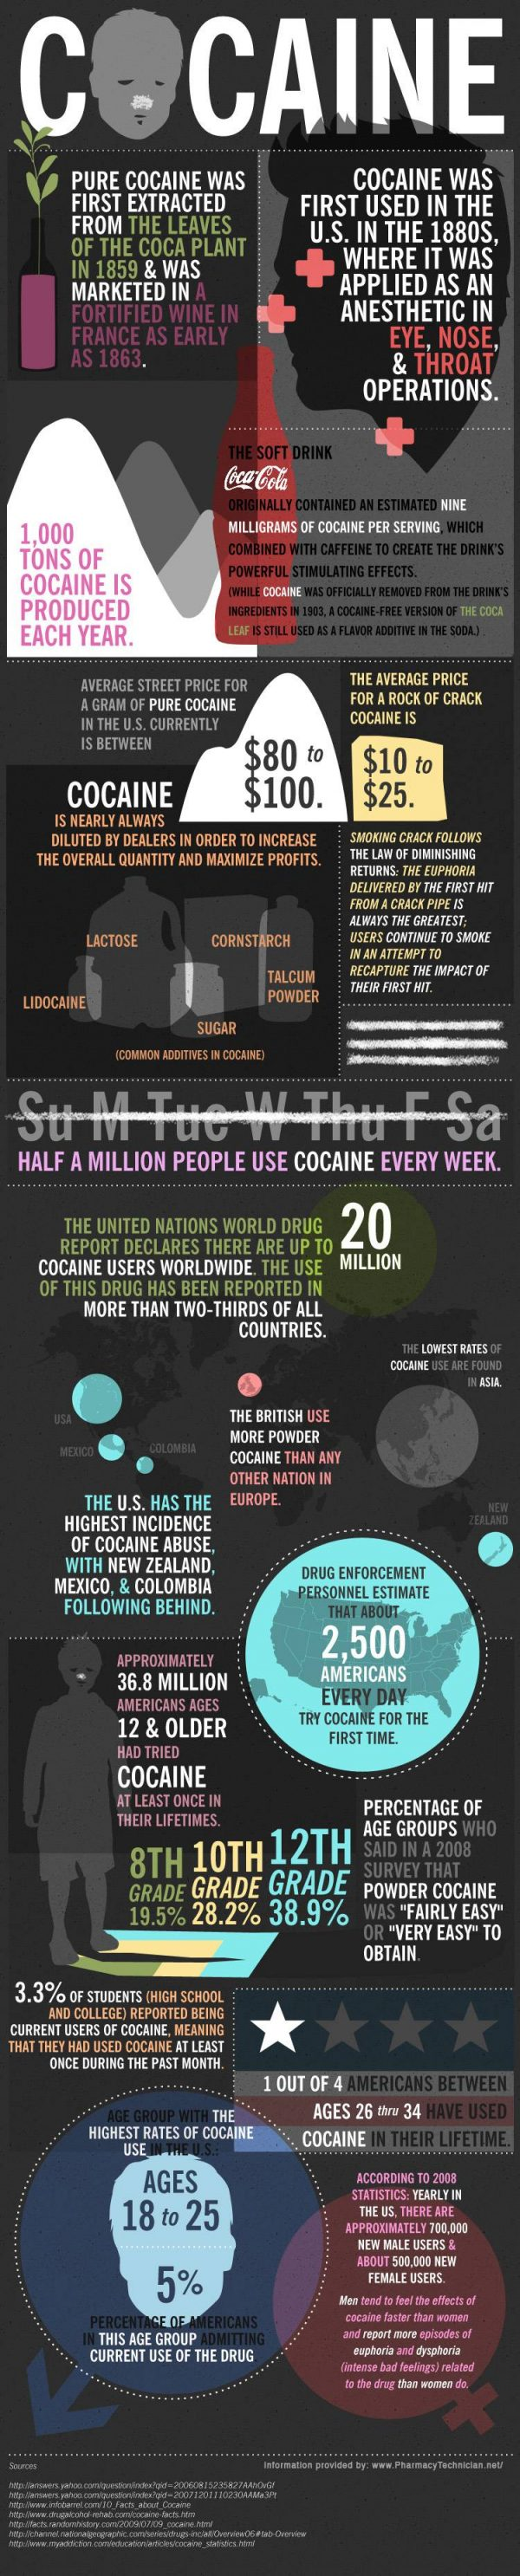 Facts About Cocaine (Infographic)